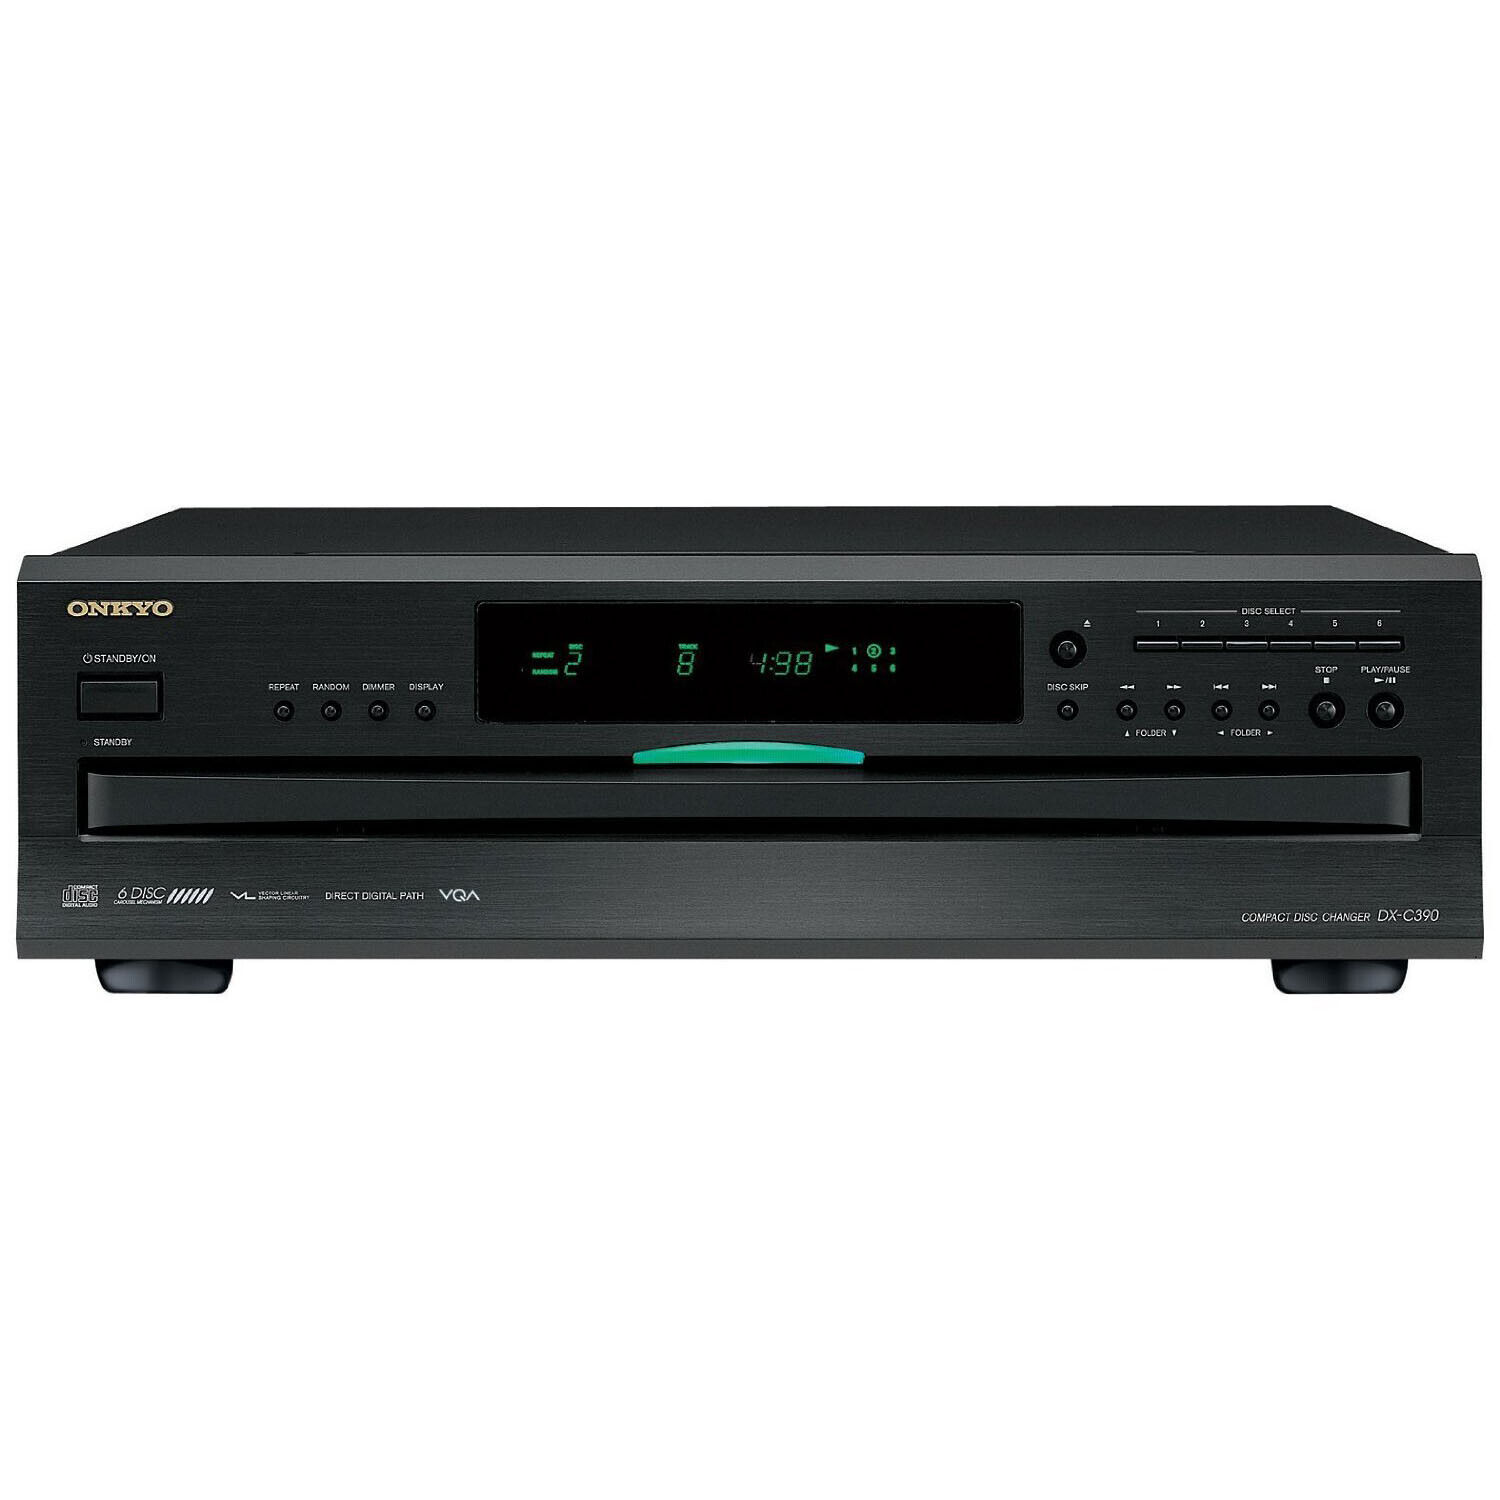 Onkyo 6-Disc Home Audio Carousel CD Changer Player with Remo